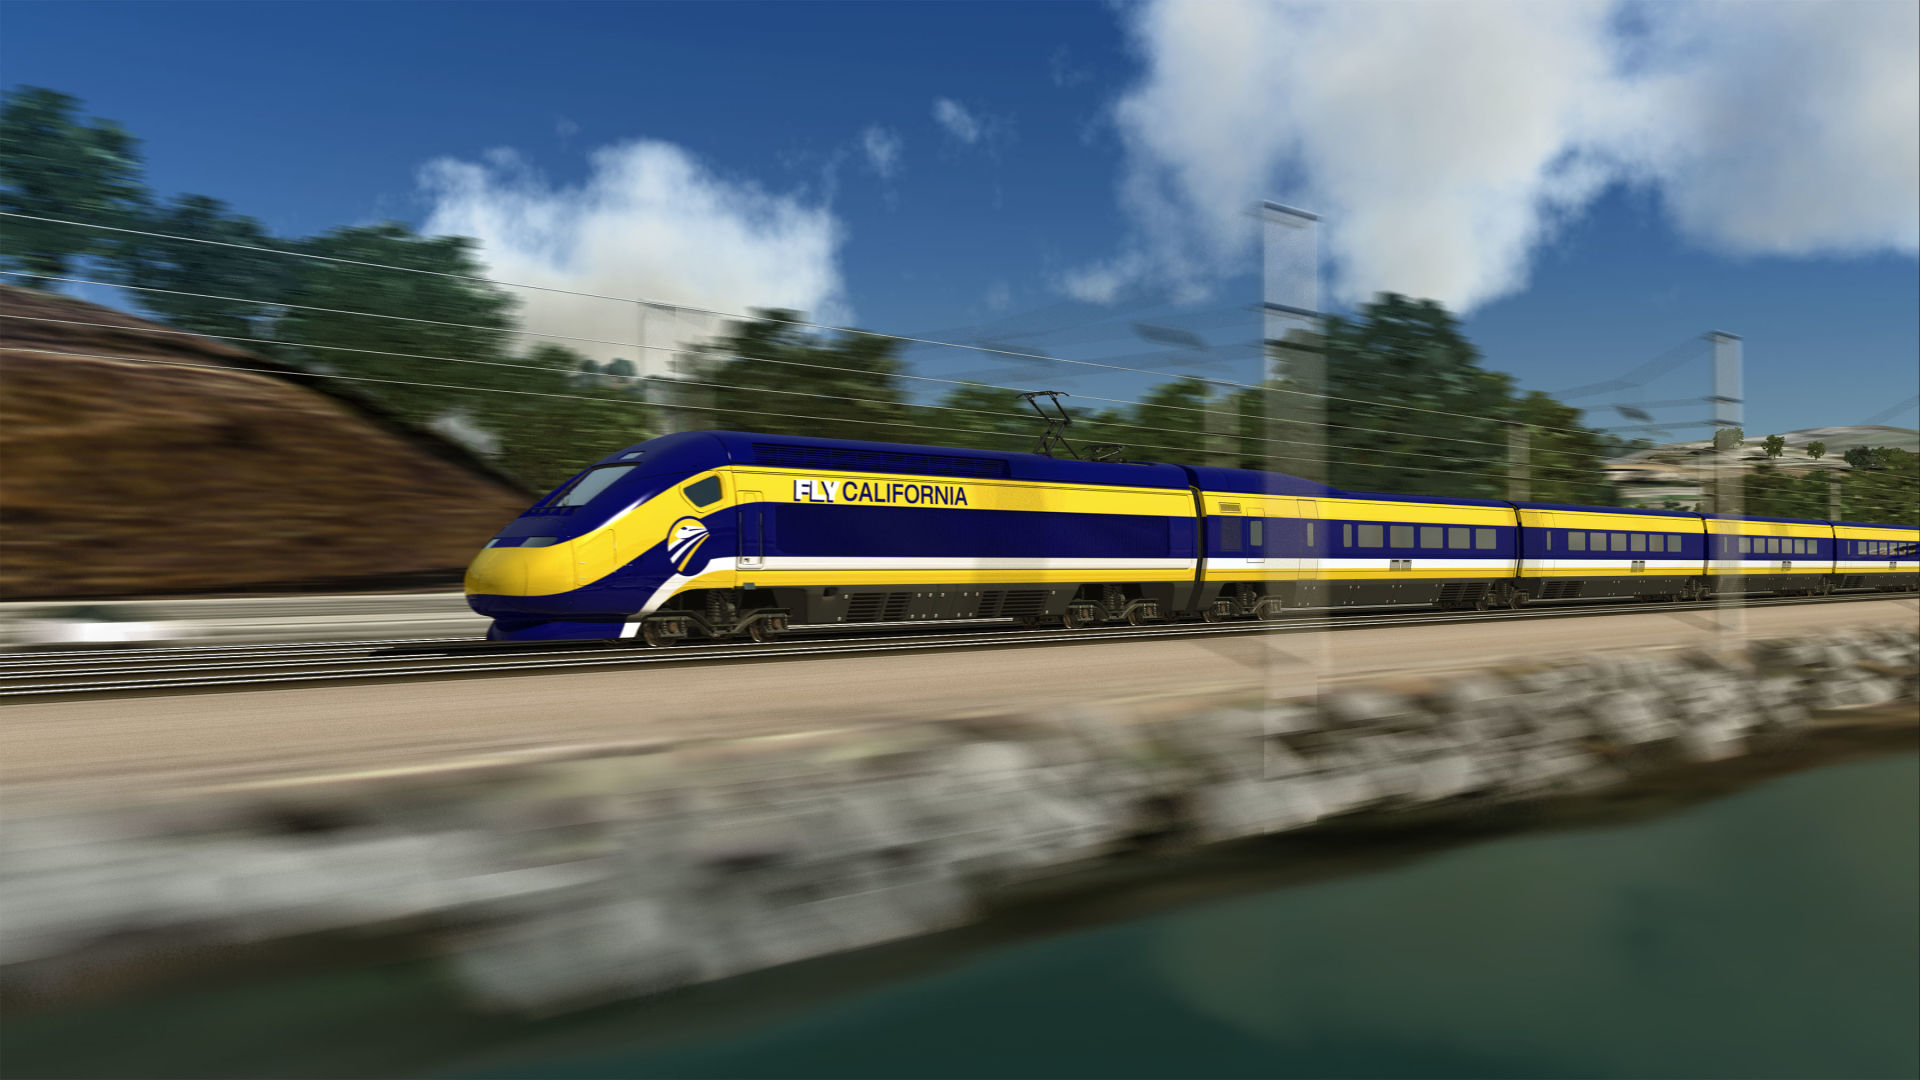 Rendering of High Speed Rail train.